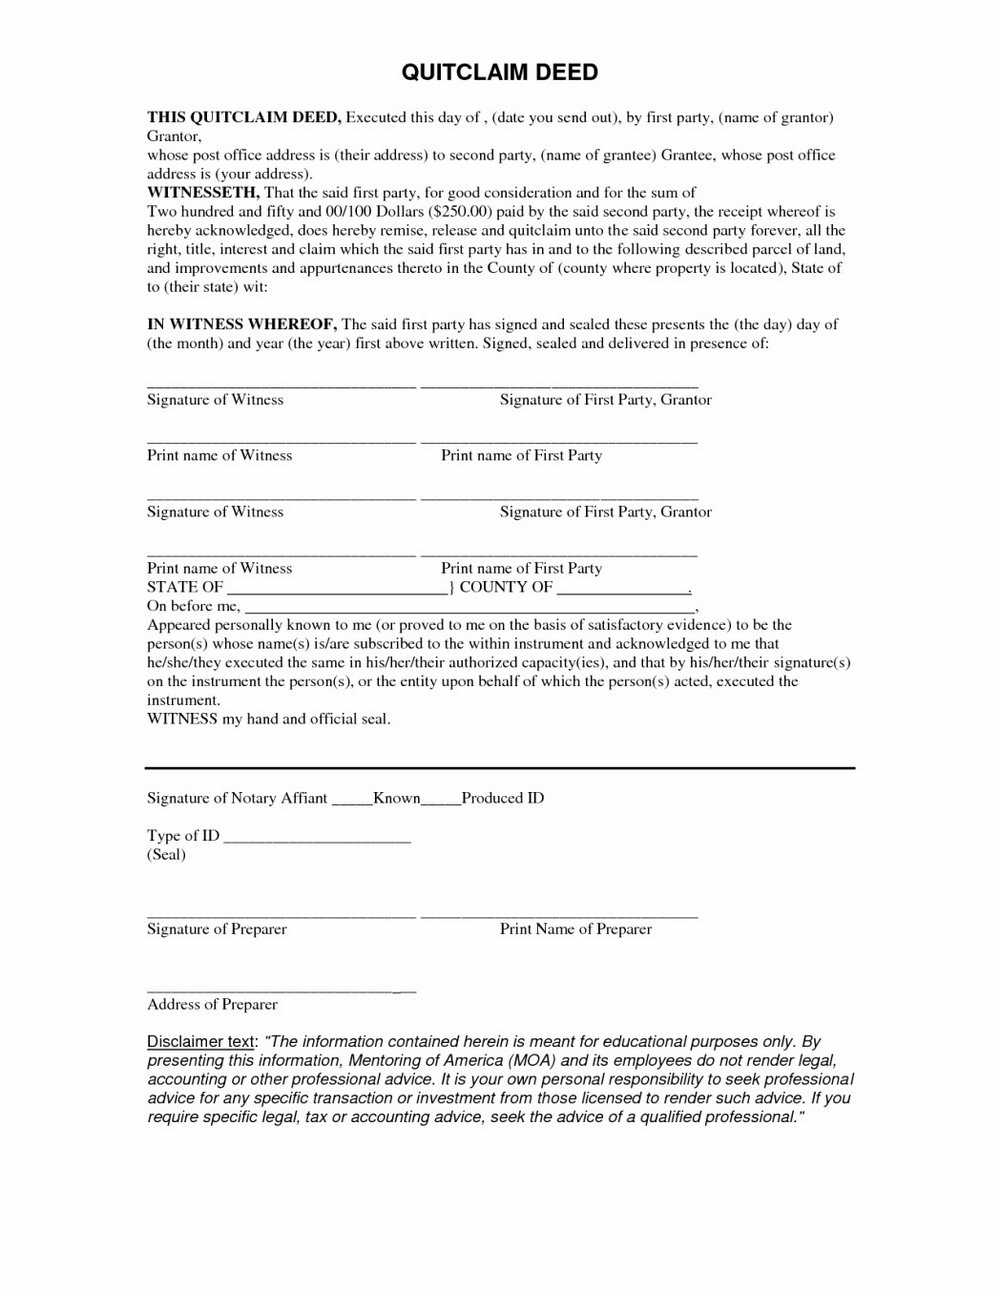 Miami Dade County Quit Claim Deed Form